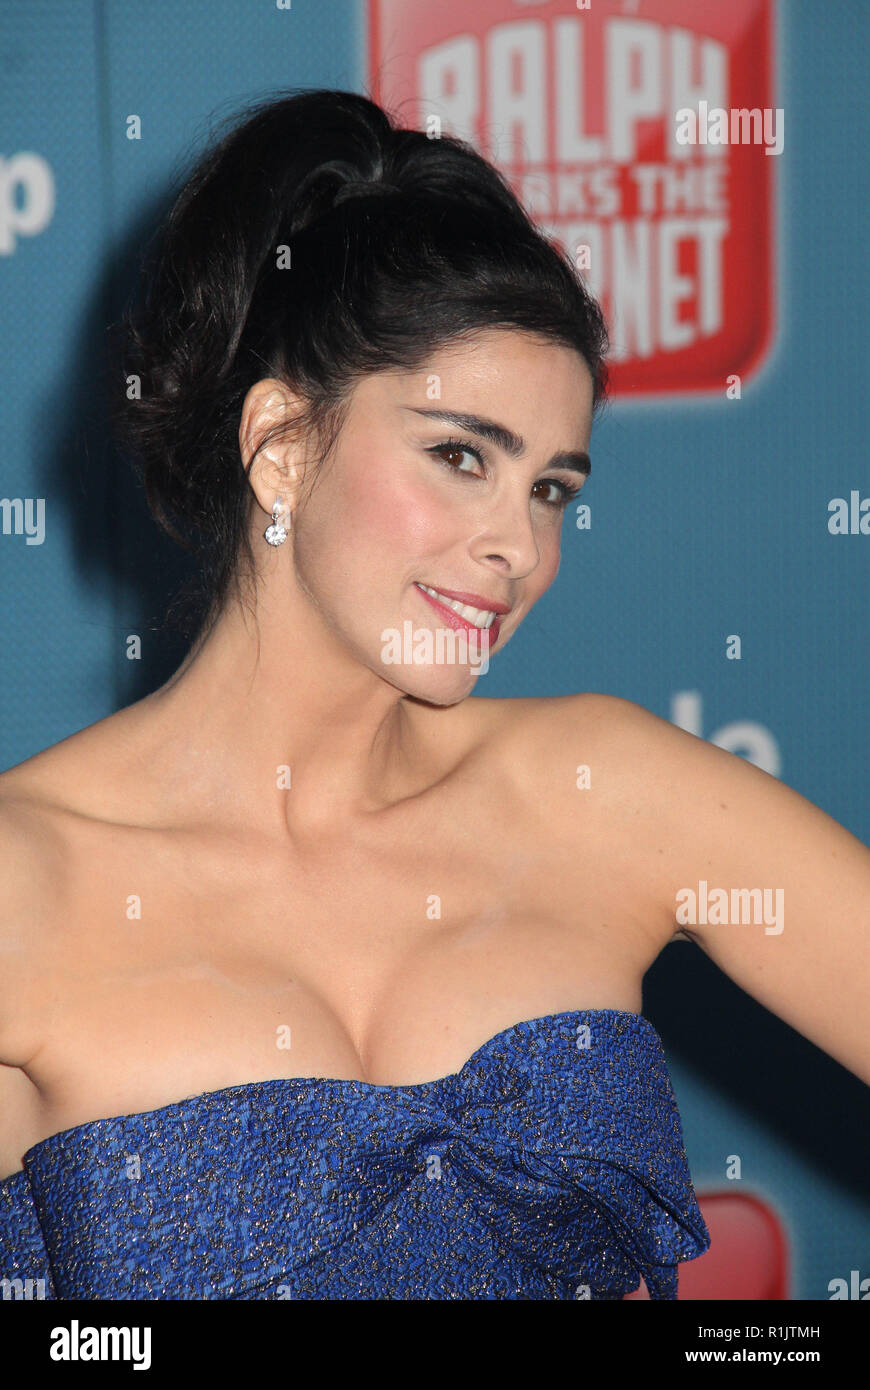 Sarah Silverman  11/05/2018 The World Premiere of 'Ralph Breaks the Internet' held at El Capitan Theatre in Los Angeles, CA   Photo: Cronos/Hollywood News - Stock Image